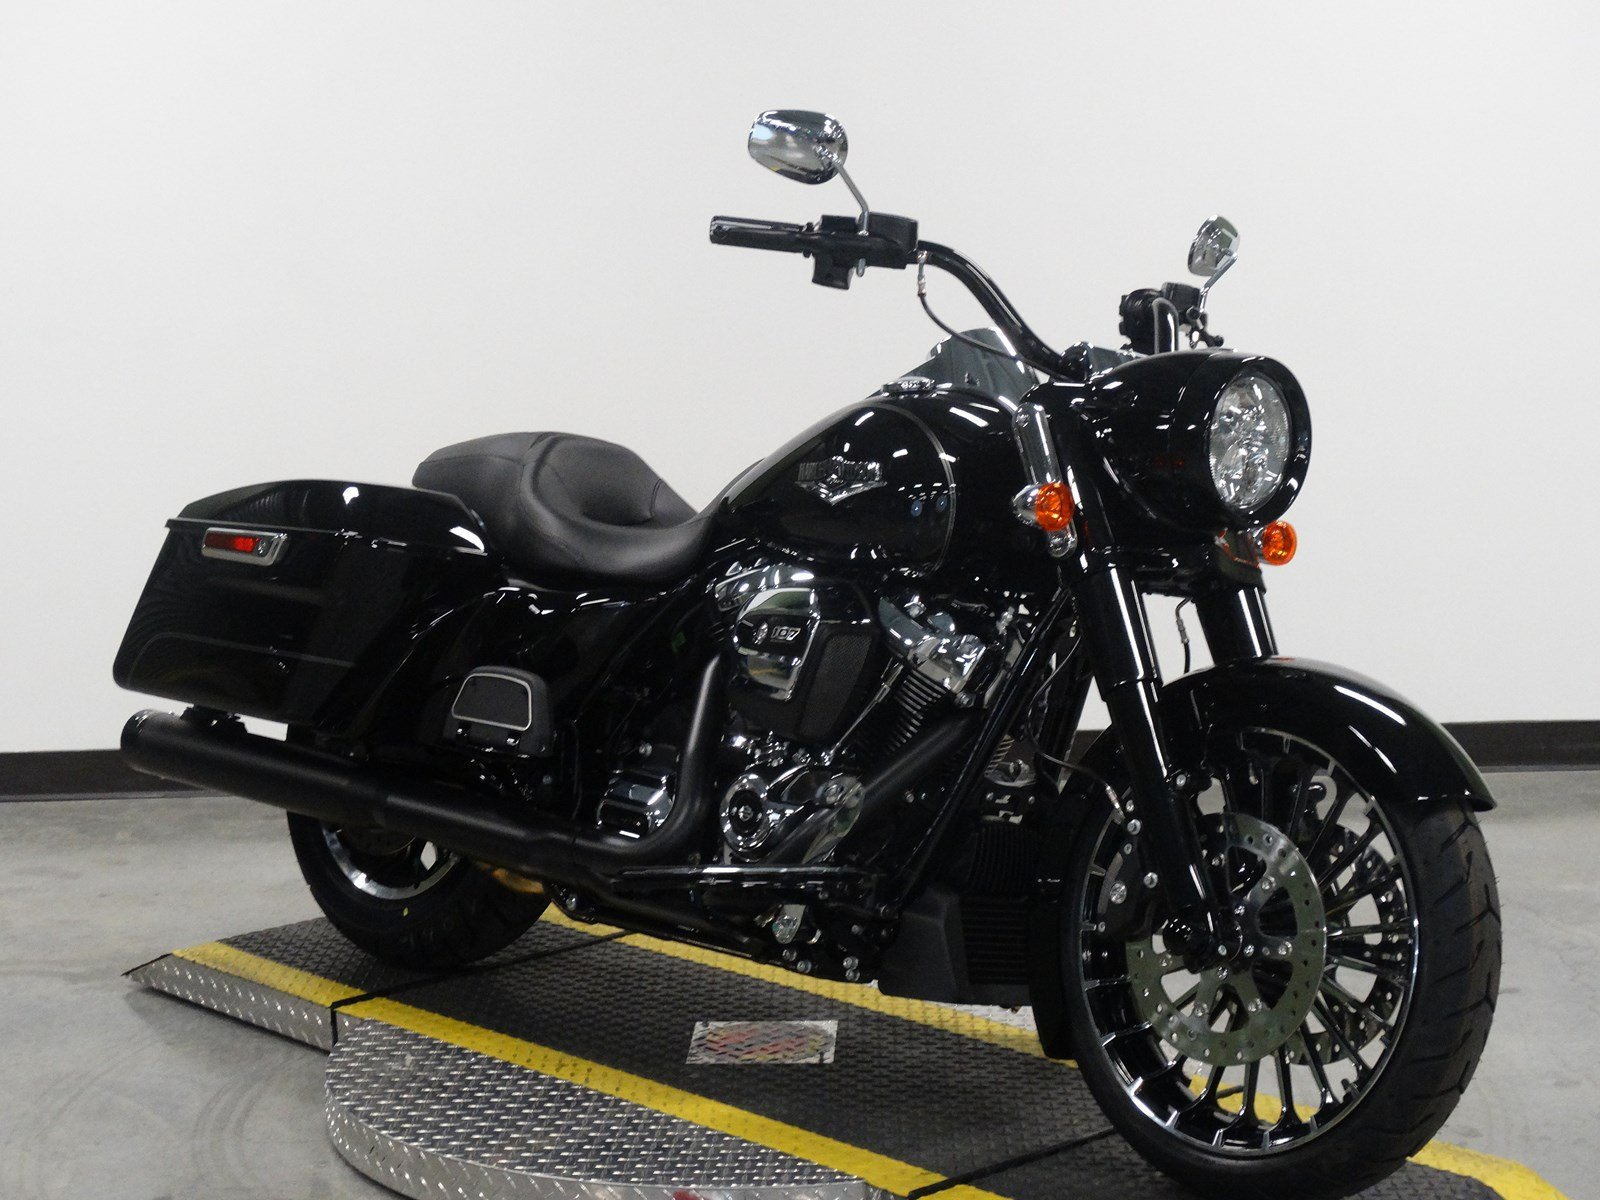 New 2017 Harley Davidson Road King Flhr Touring In Olathe H637498